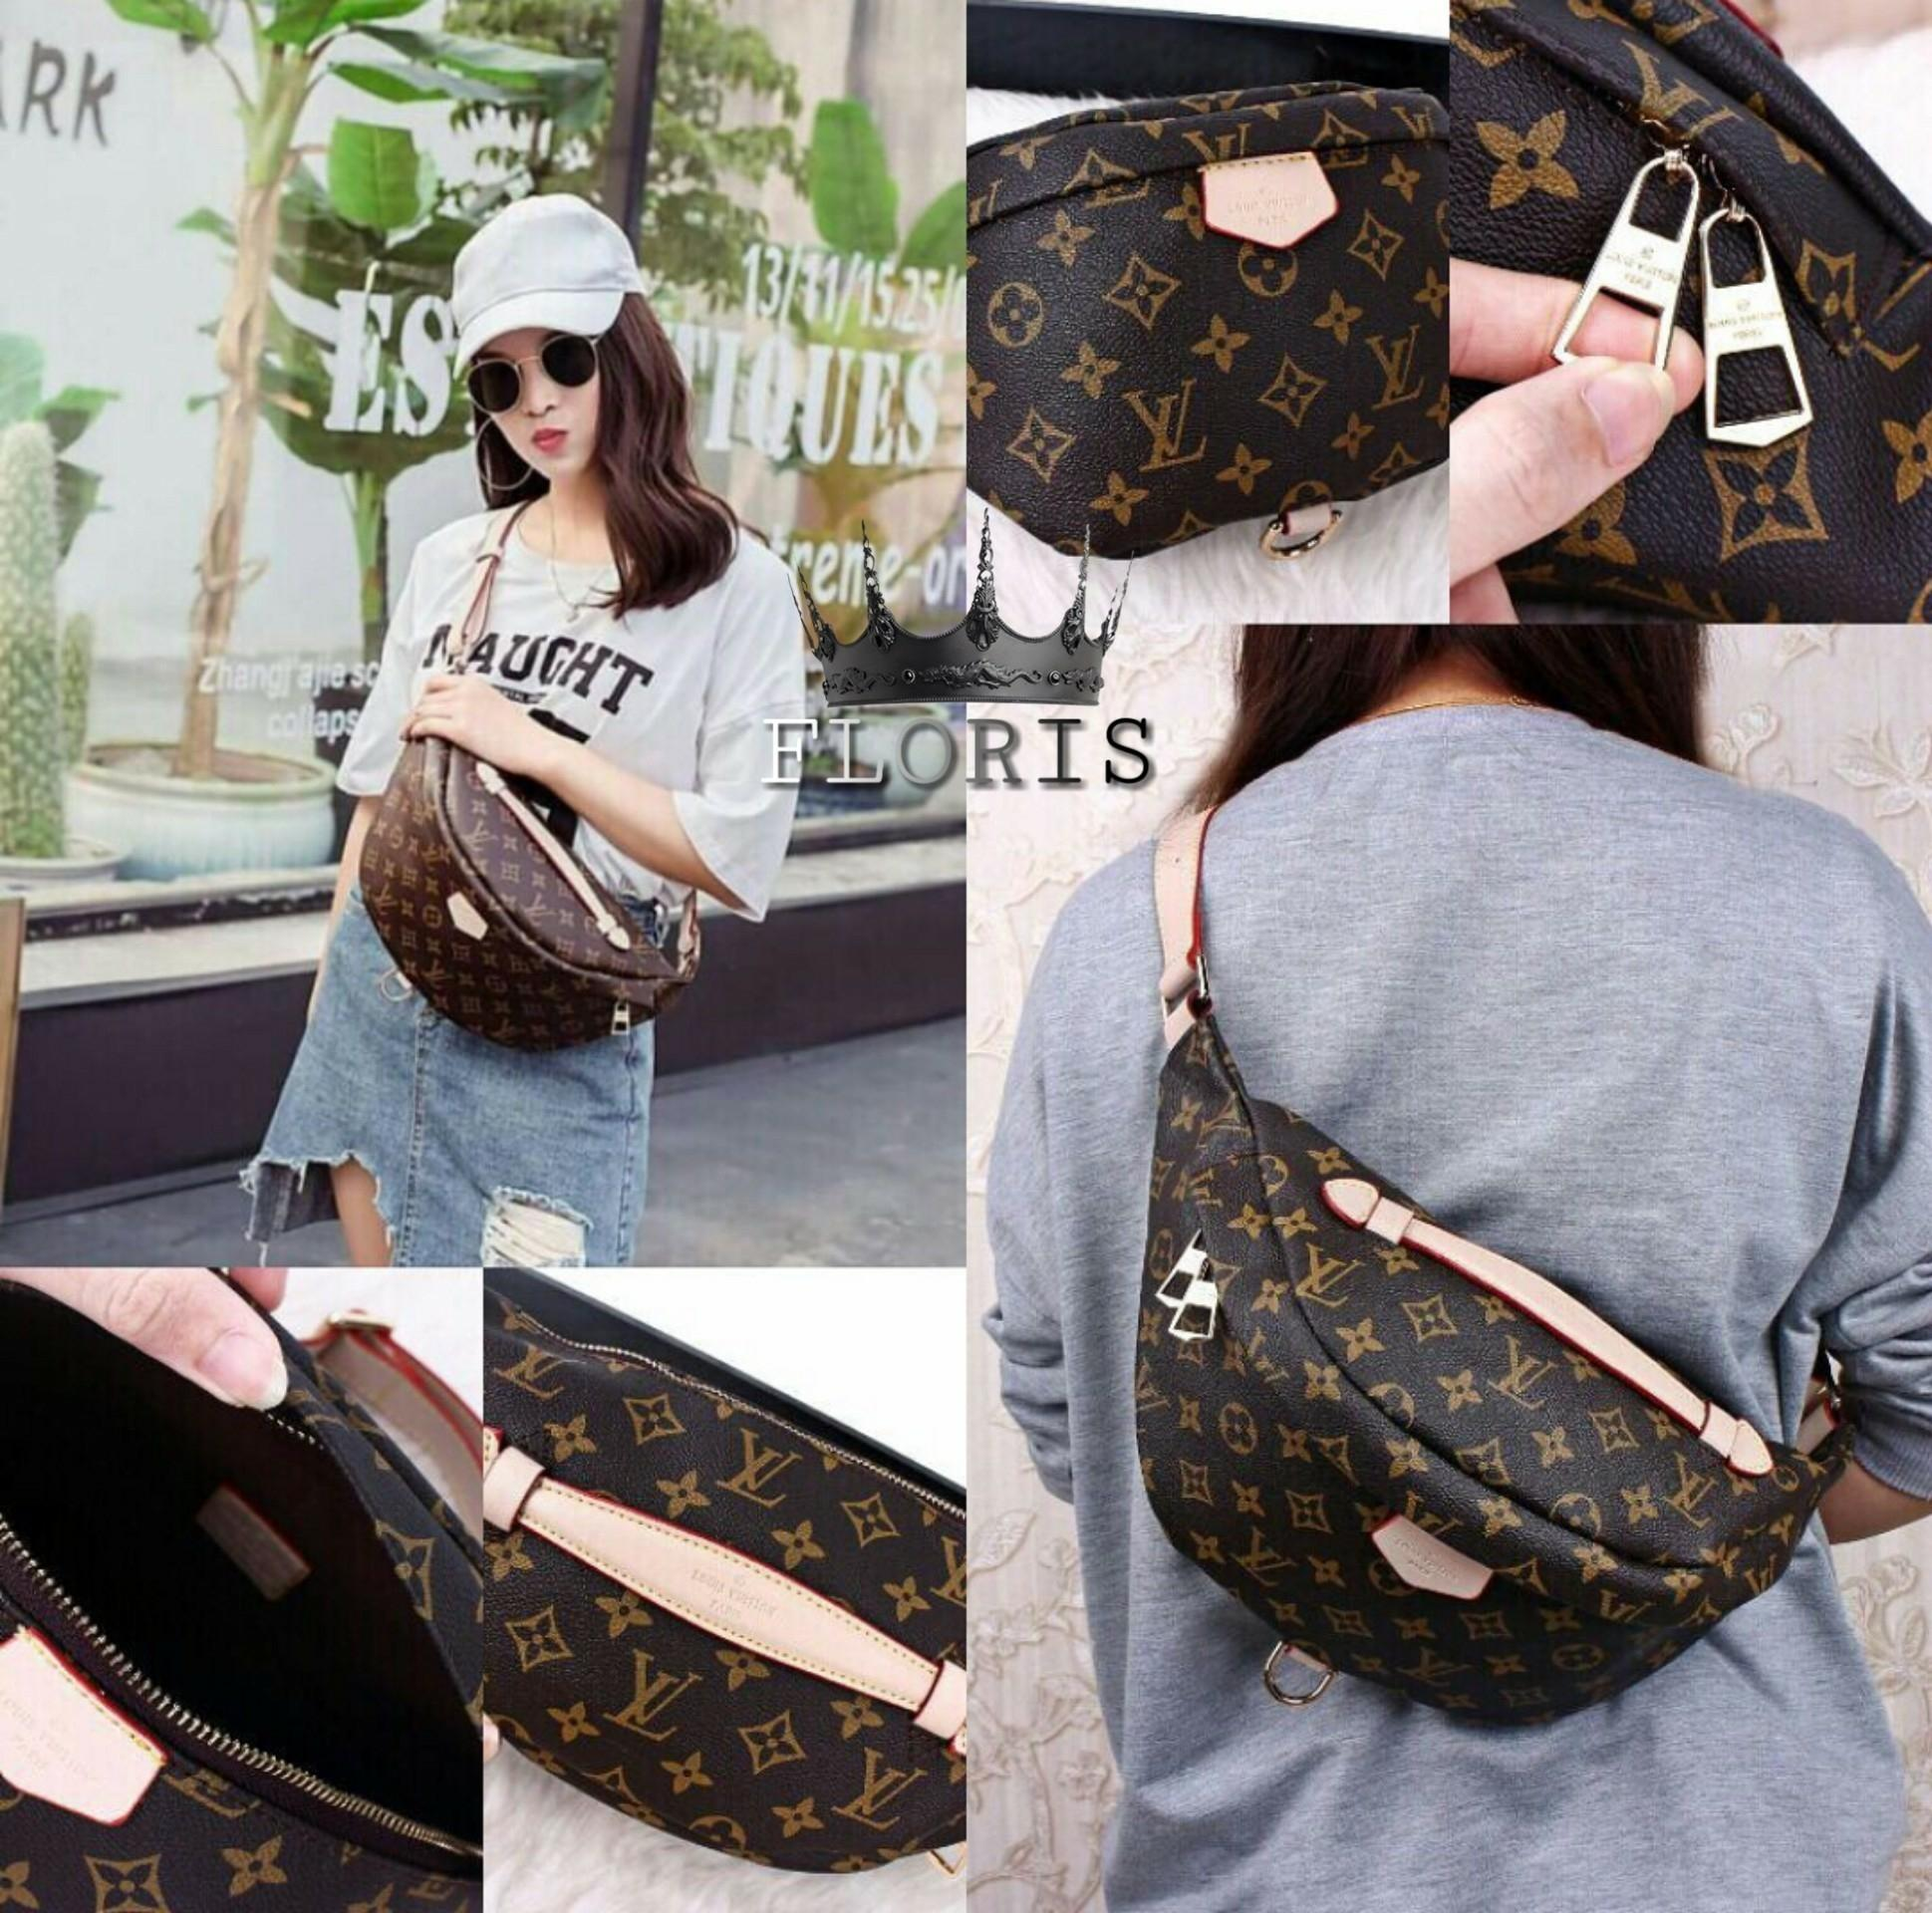 Buy   Sell Cheapest TAS LV SELEMPANG Best Quality Product Deals ... 31576aee16